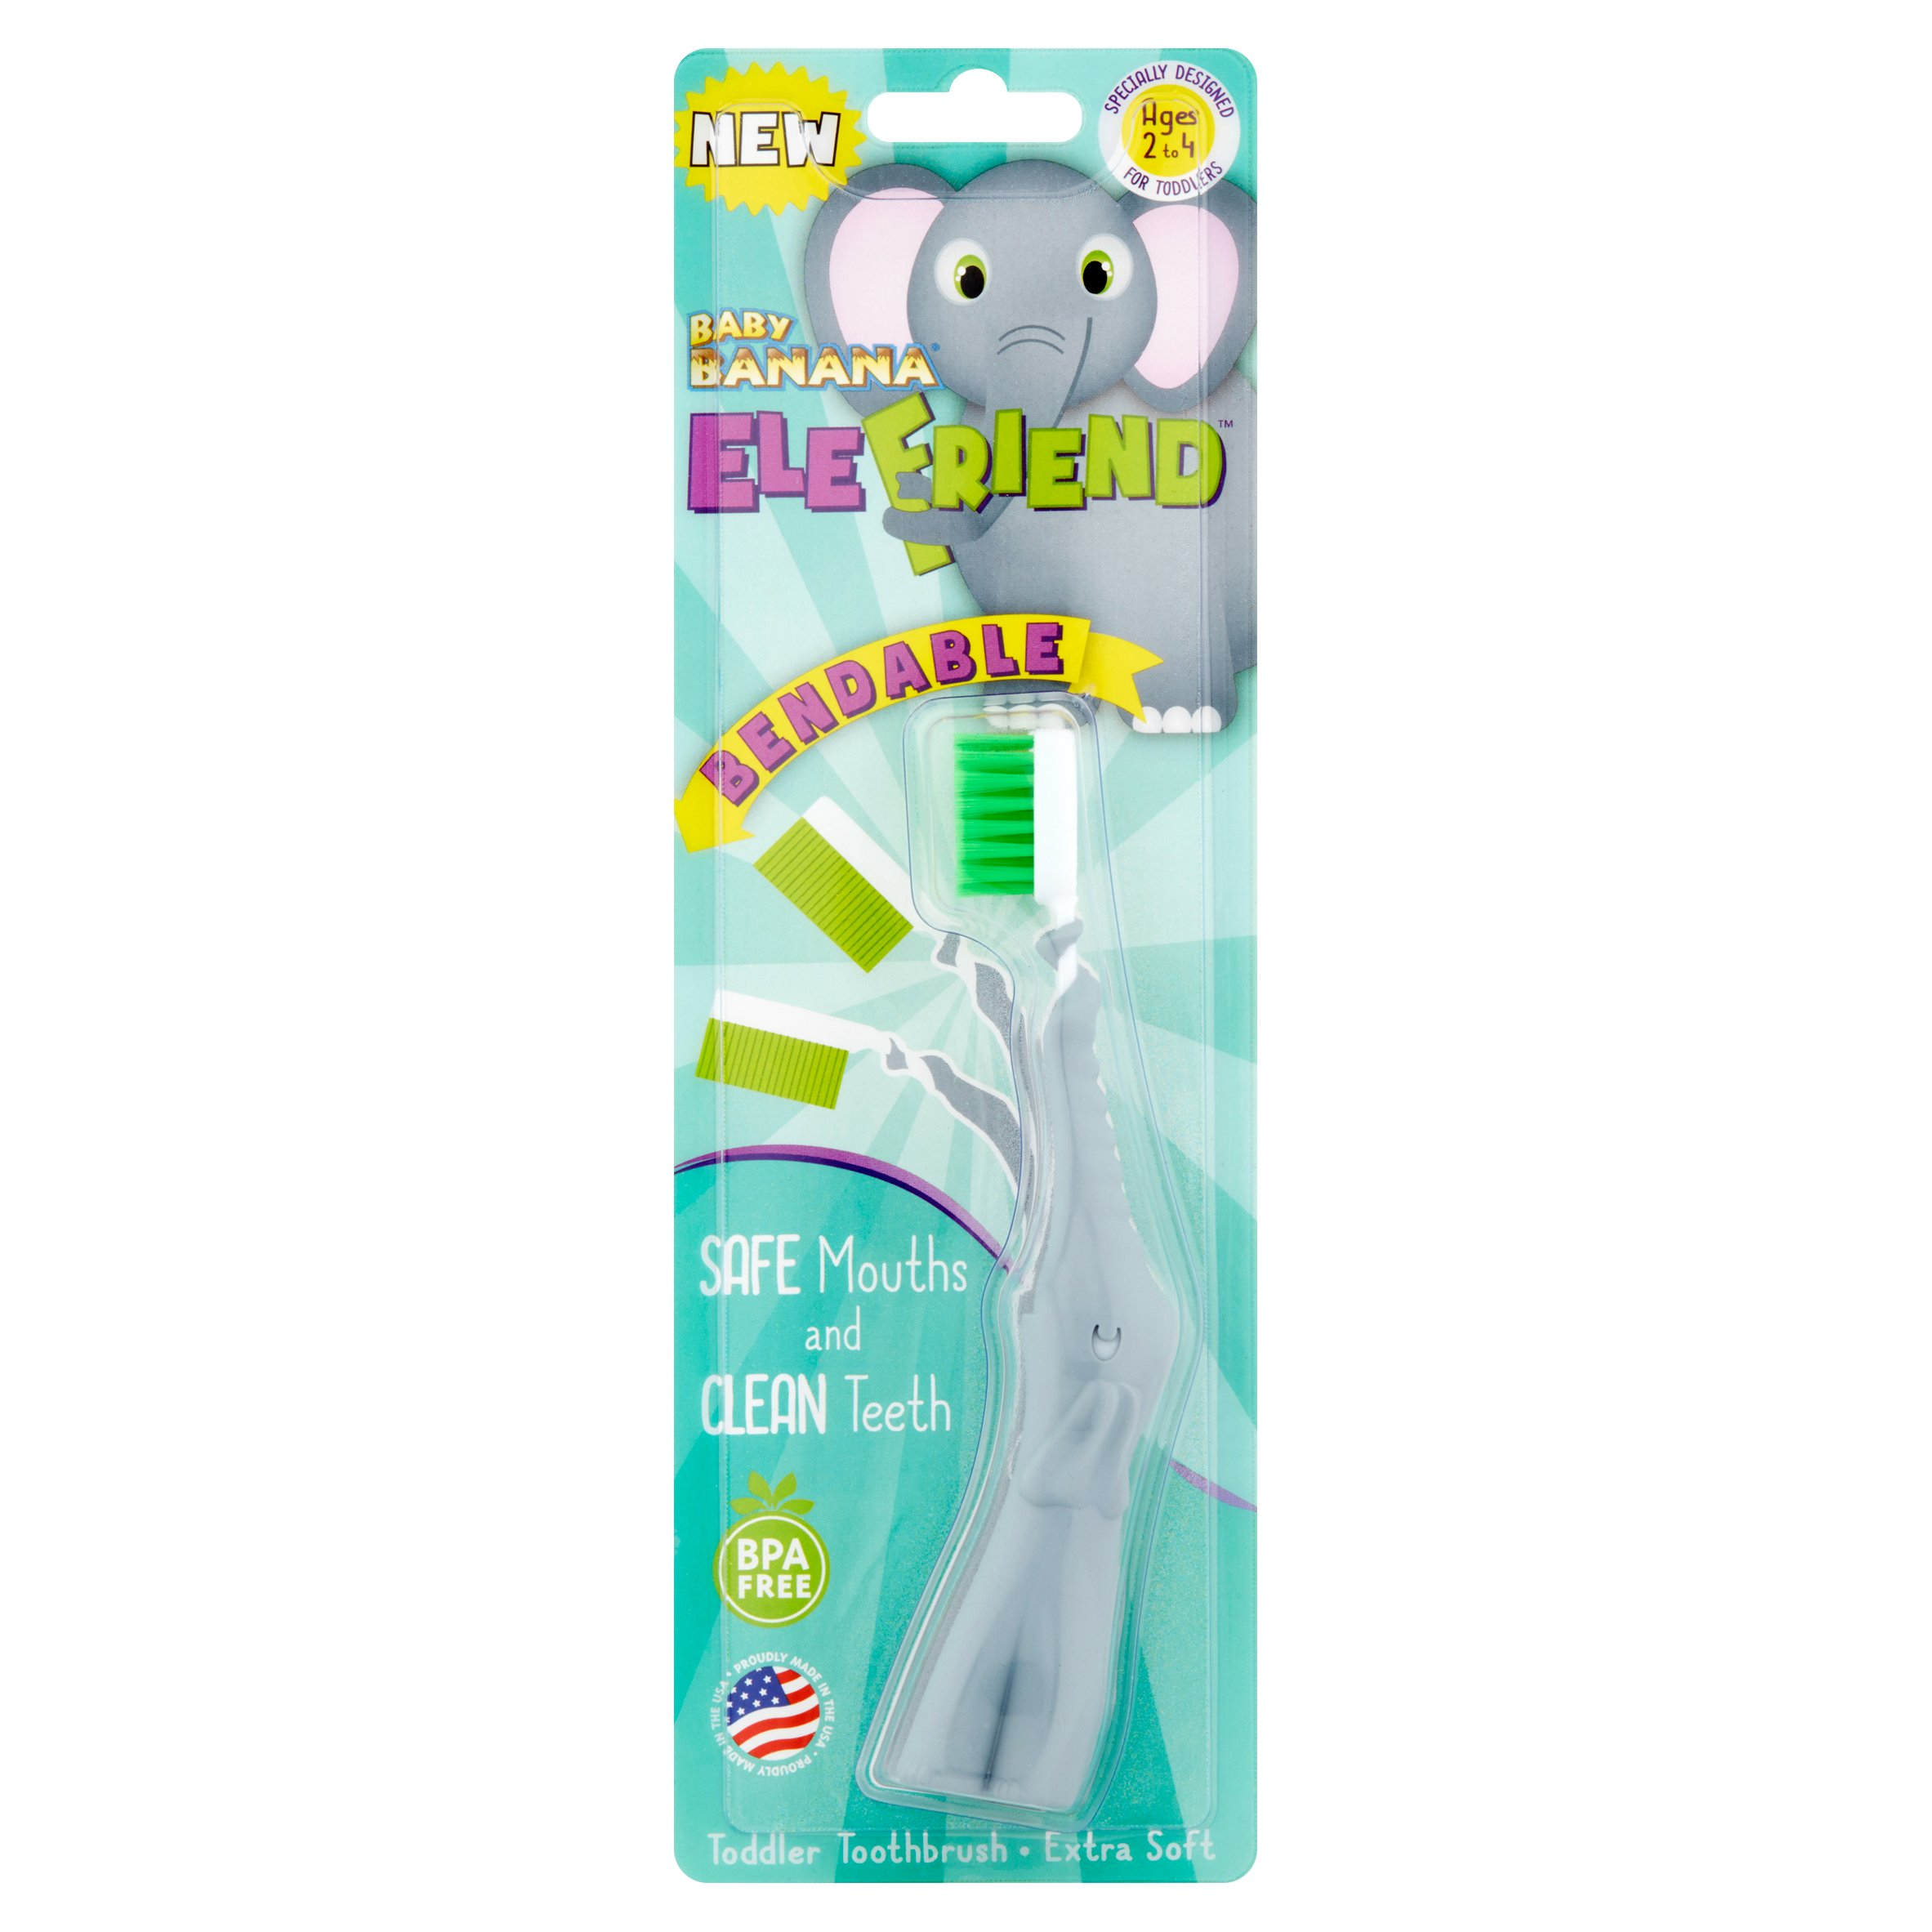 Baby Banana EleFriend Extra Soft Bendable Toddler Toothbrush Ages 2 to 4